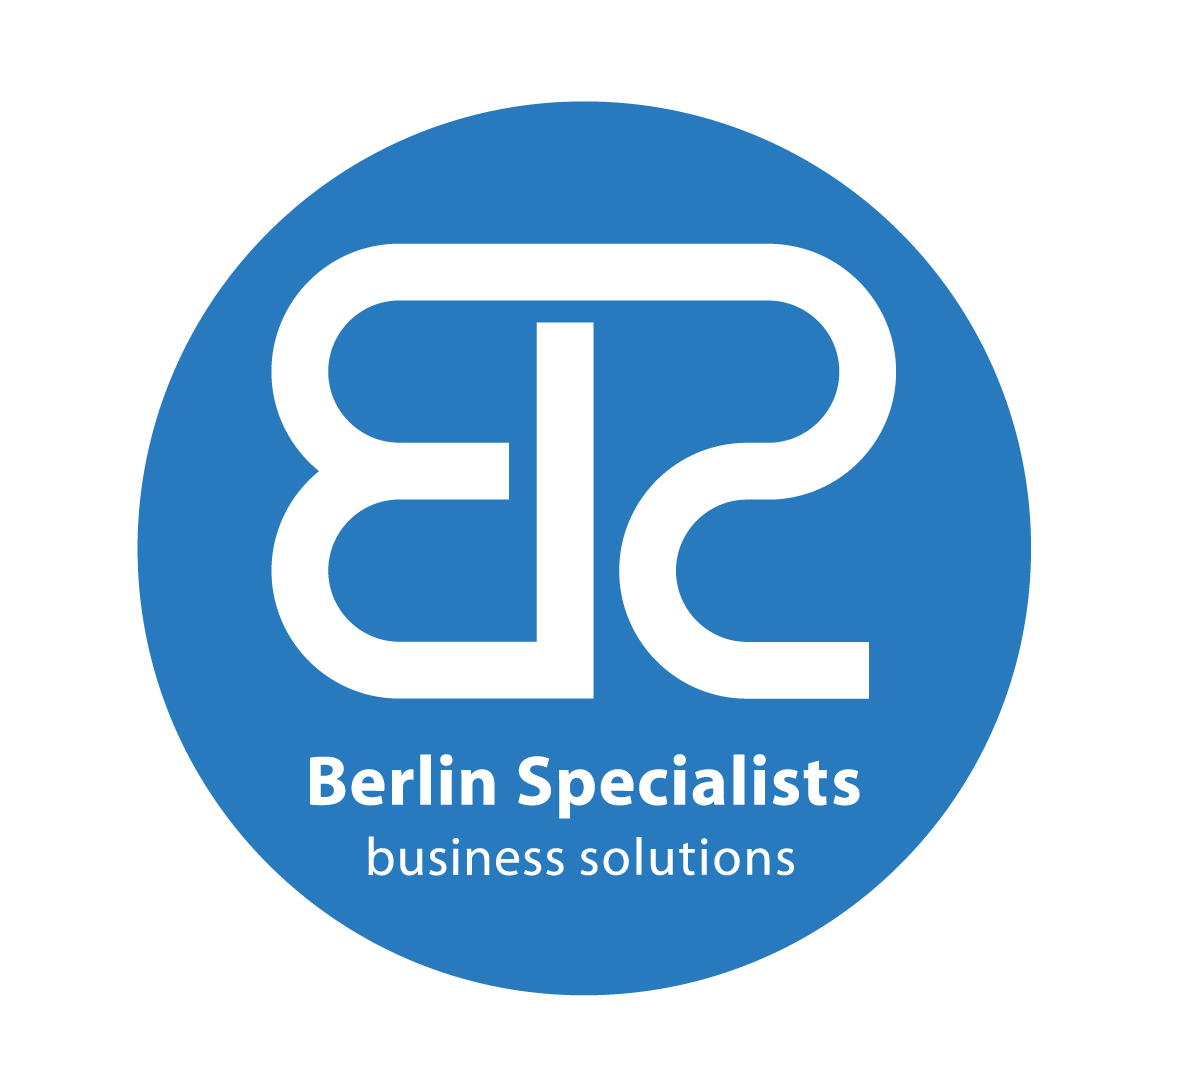 berlin_specialists_logo